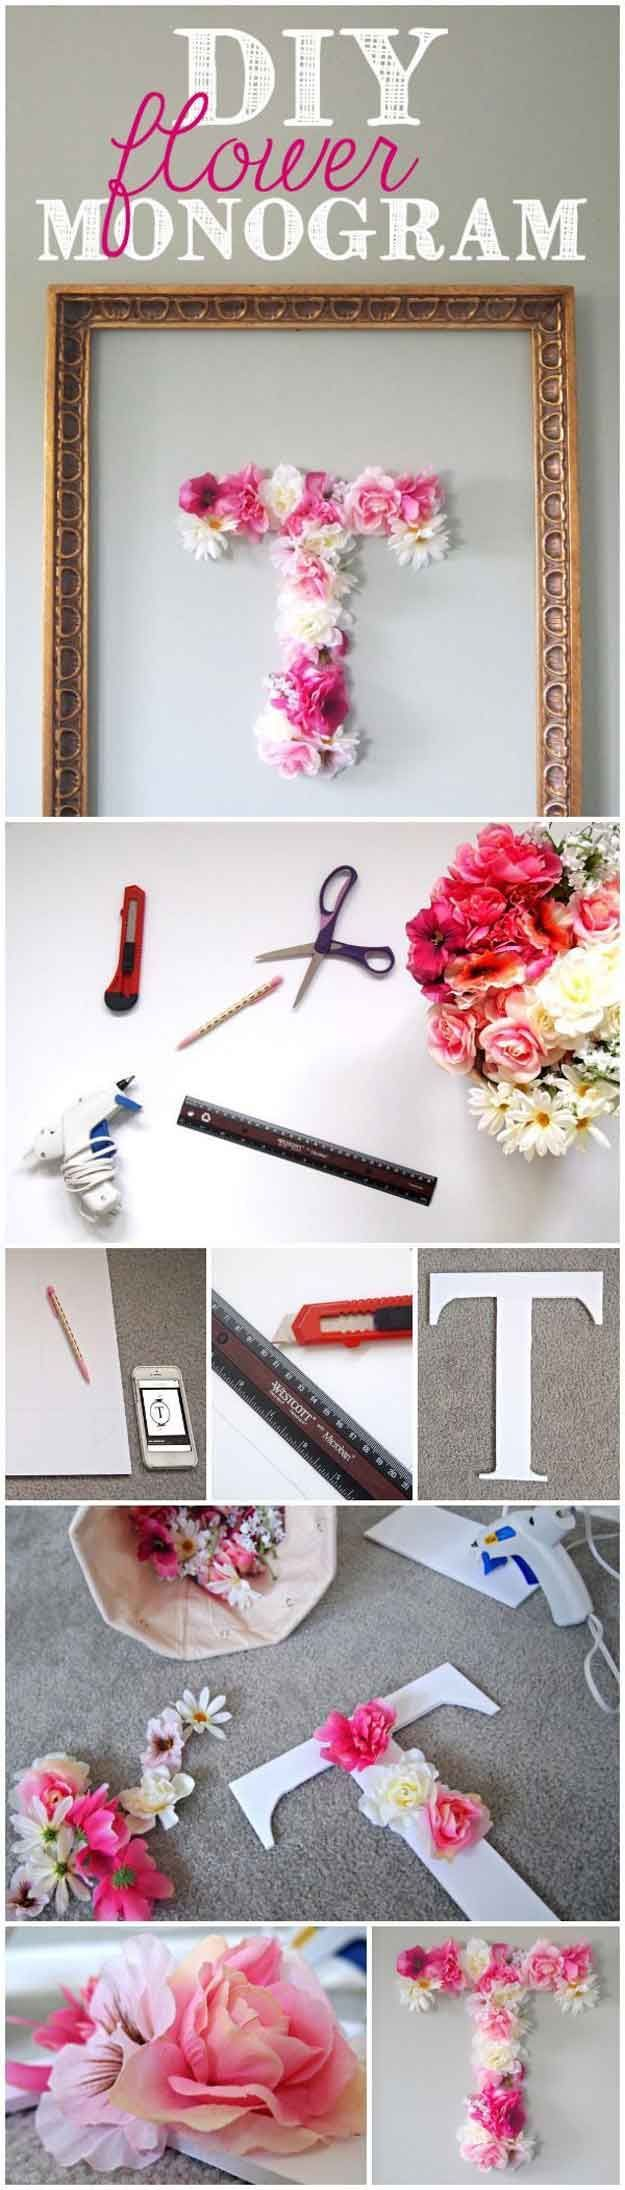 Teenage bedroom wall art - Cool Wall Art Room Decorations For Teen Bedroom Diy Flower Monogram By Diy Ready At